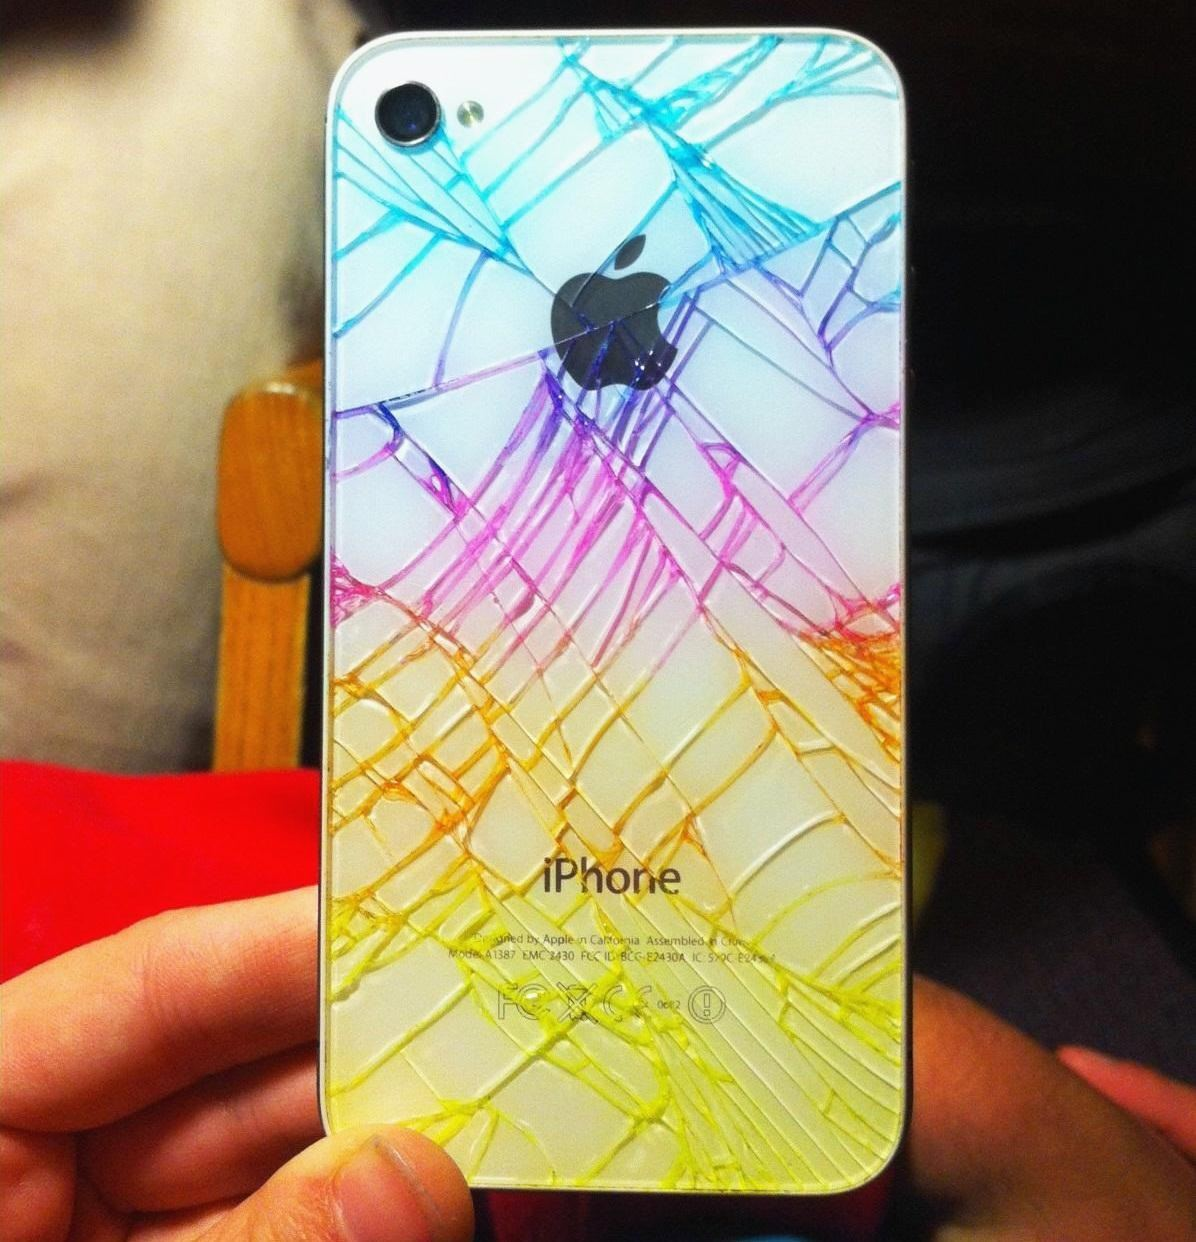 iPhone Quick Tip: Add Color to Make Your Broken Rear Glass Panel Look… Less Broke